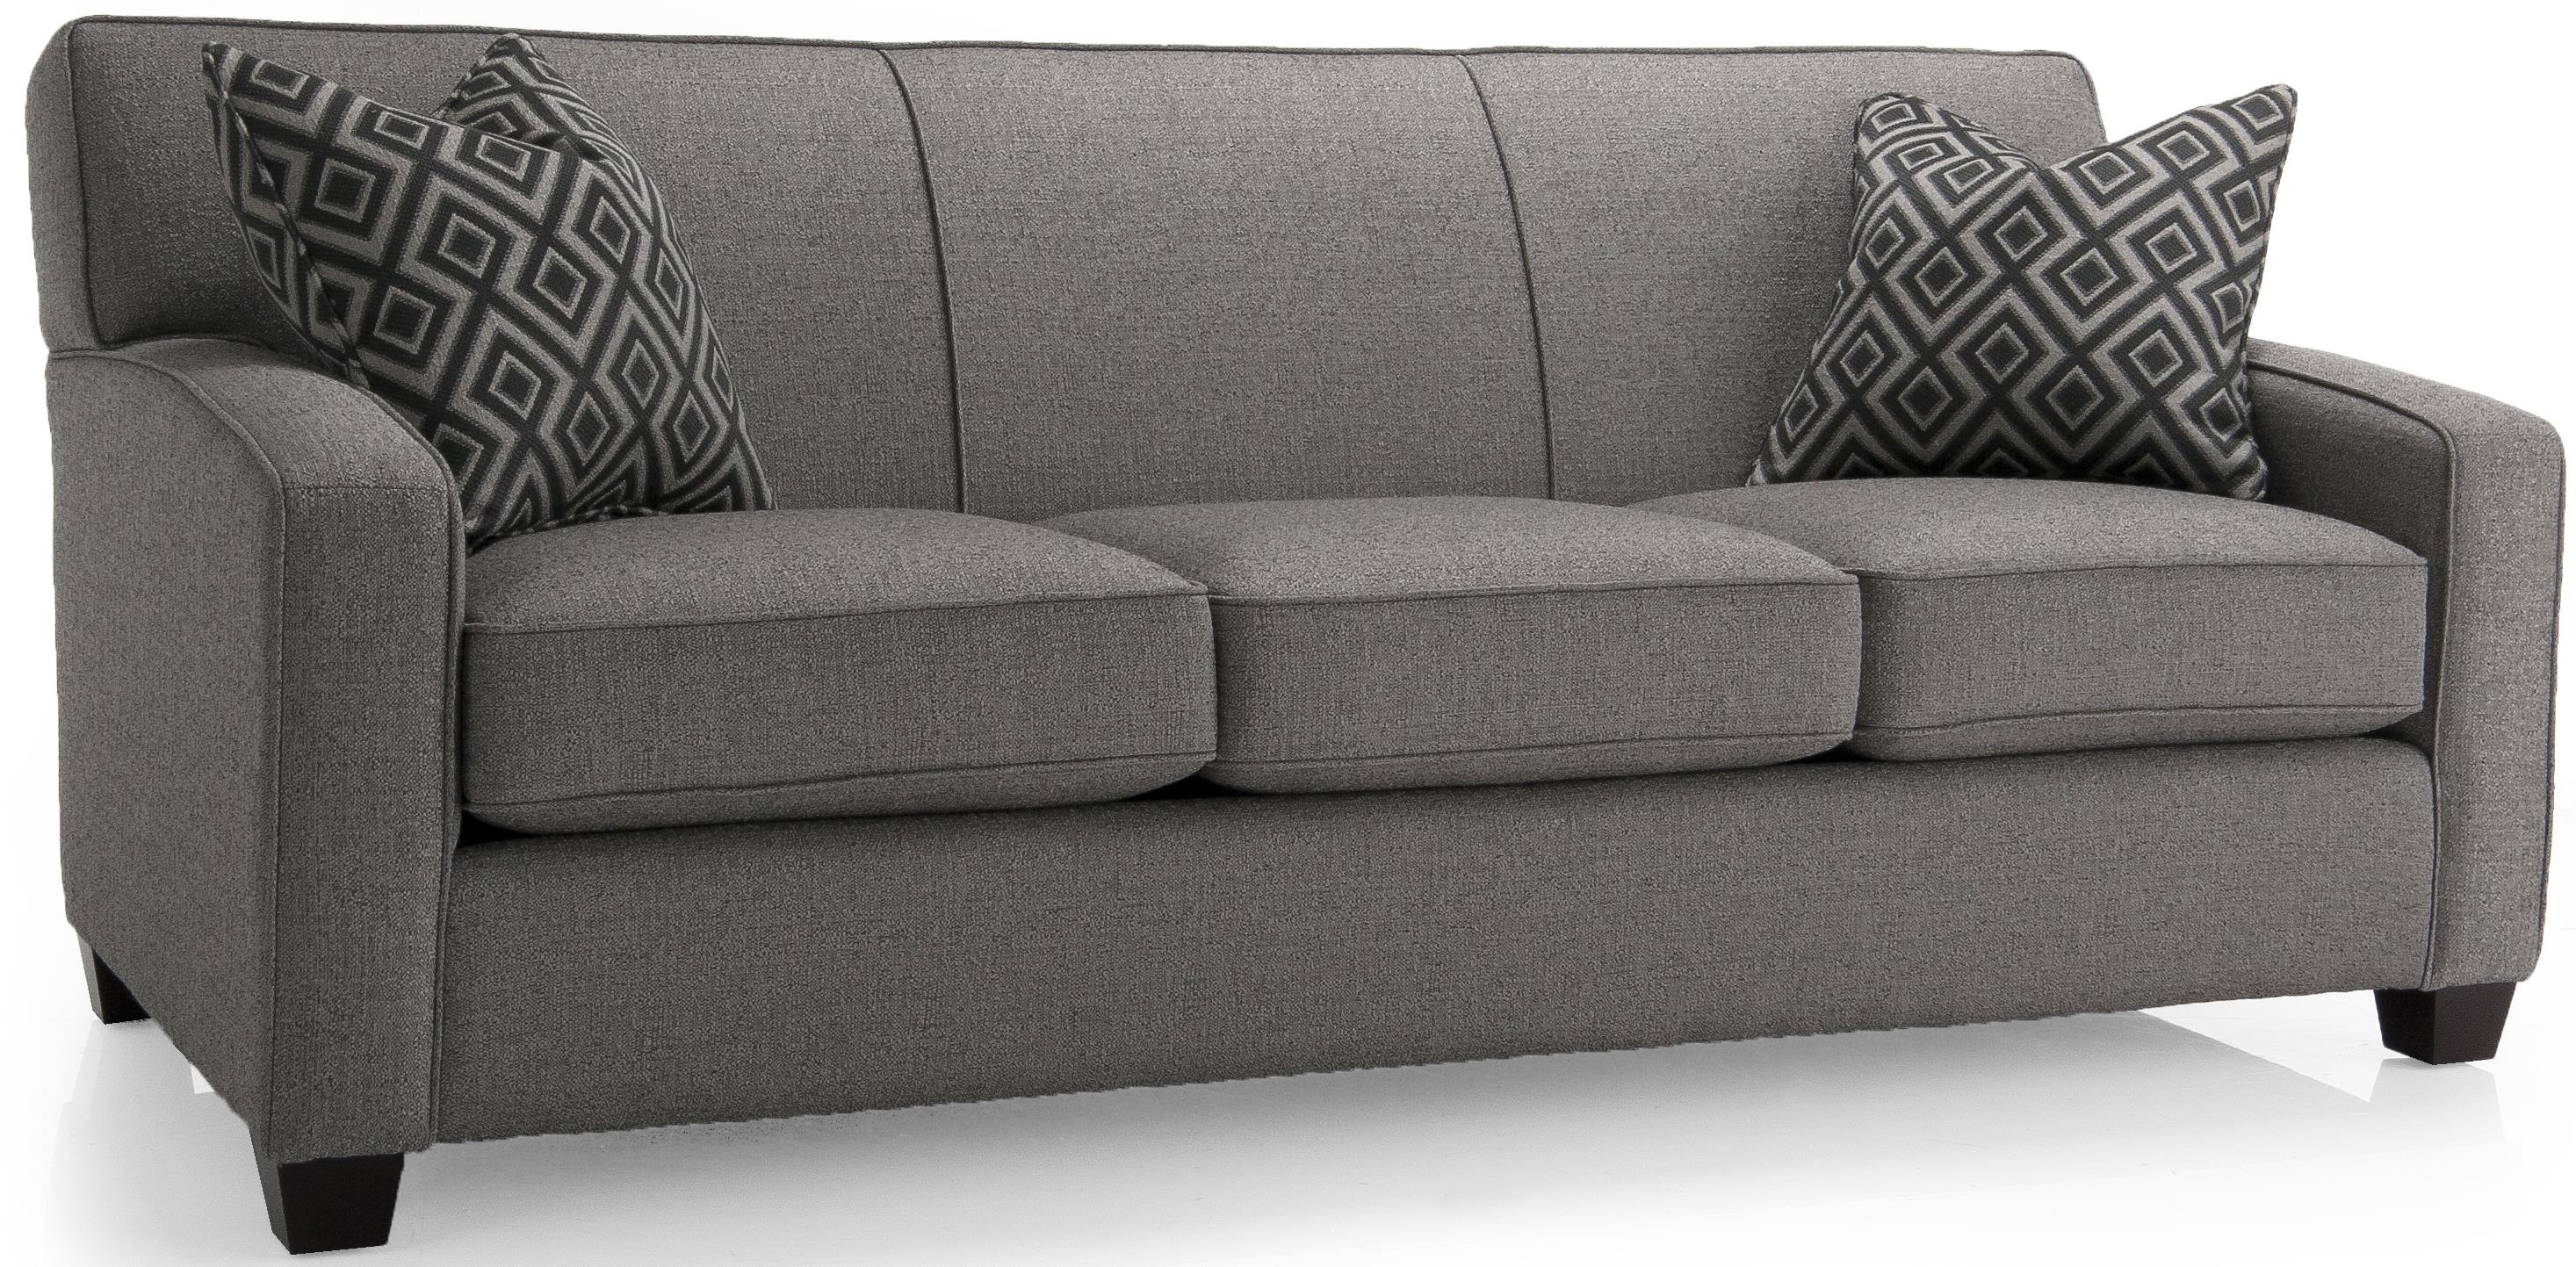 2401 Stationary Sofa by Decor-Rest at Rooms for Less